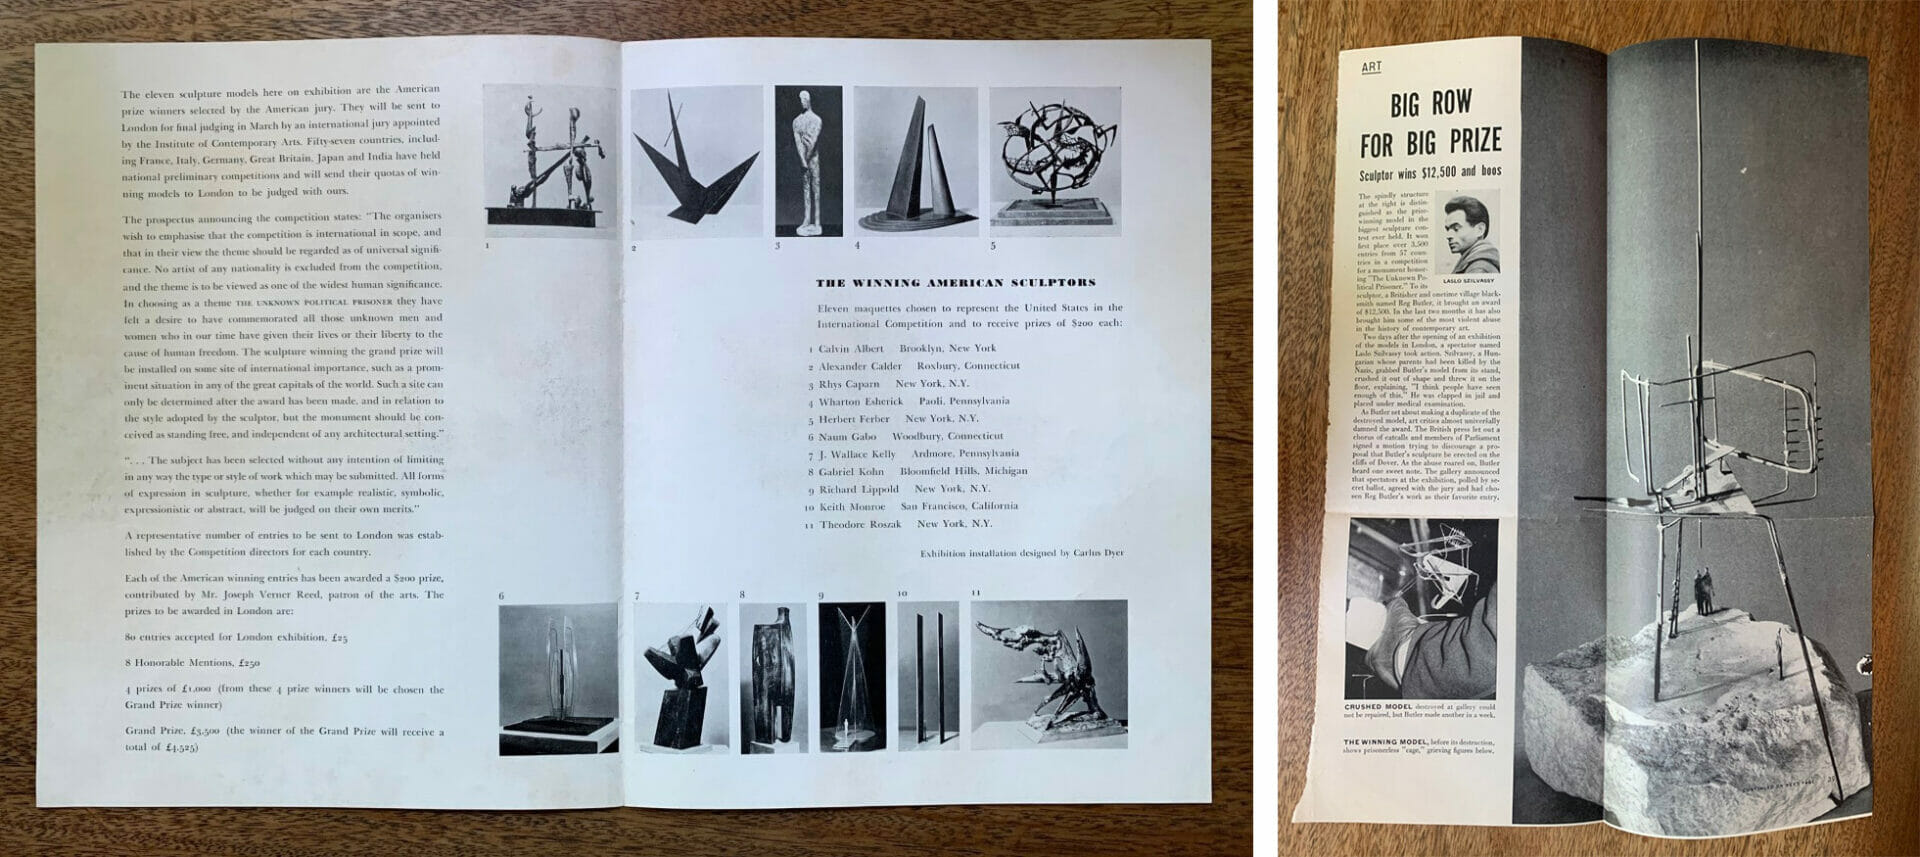 exhibition catalog and news clipping